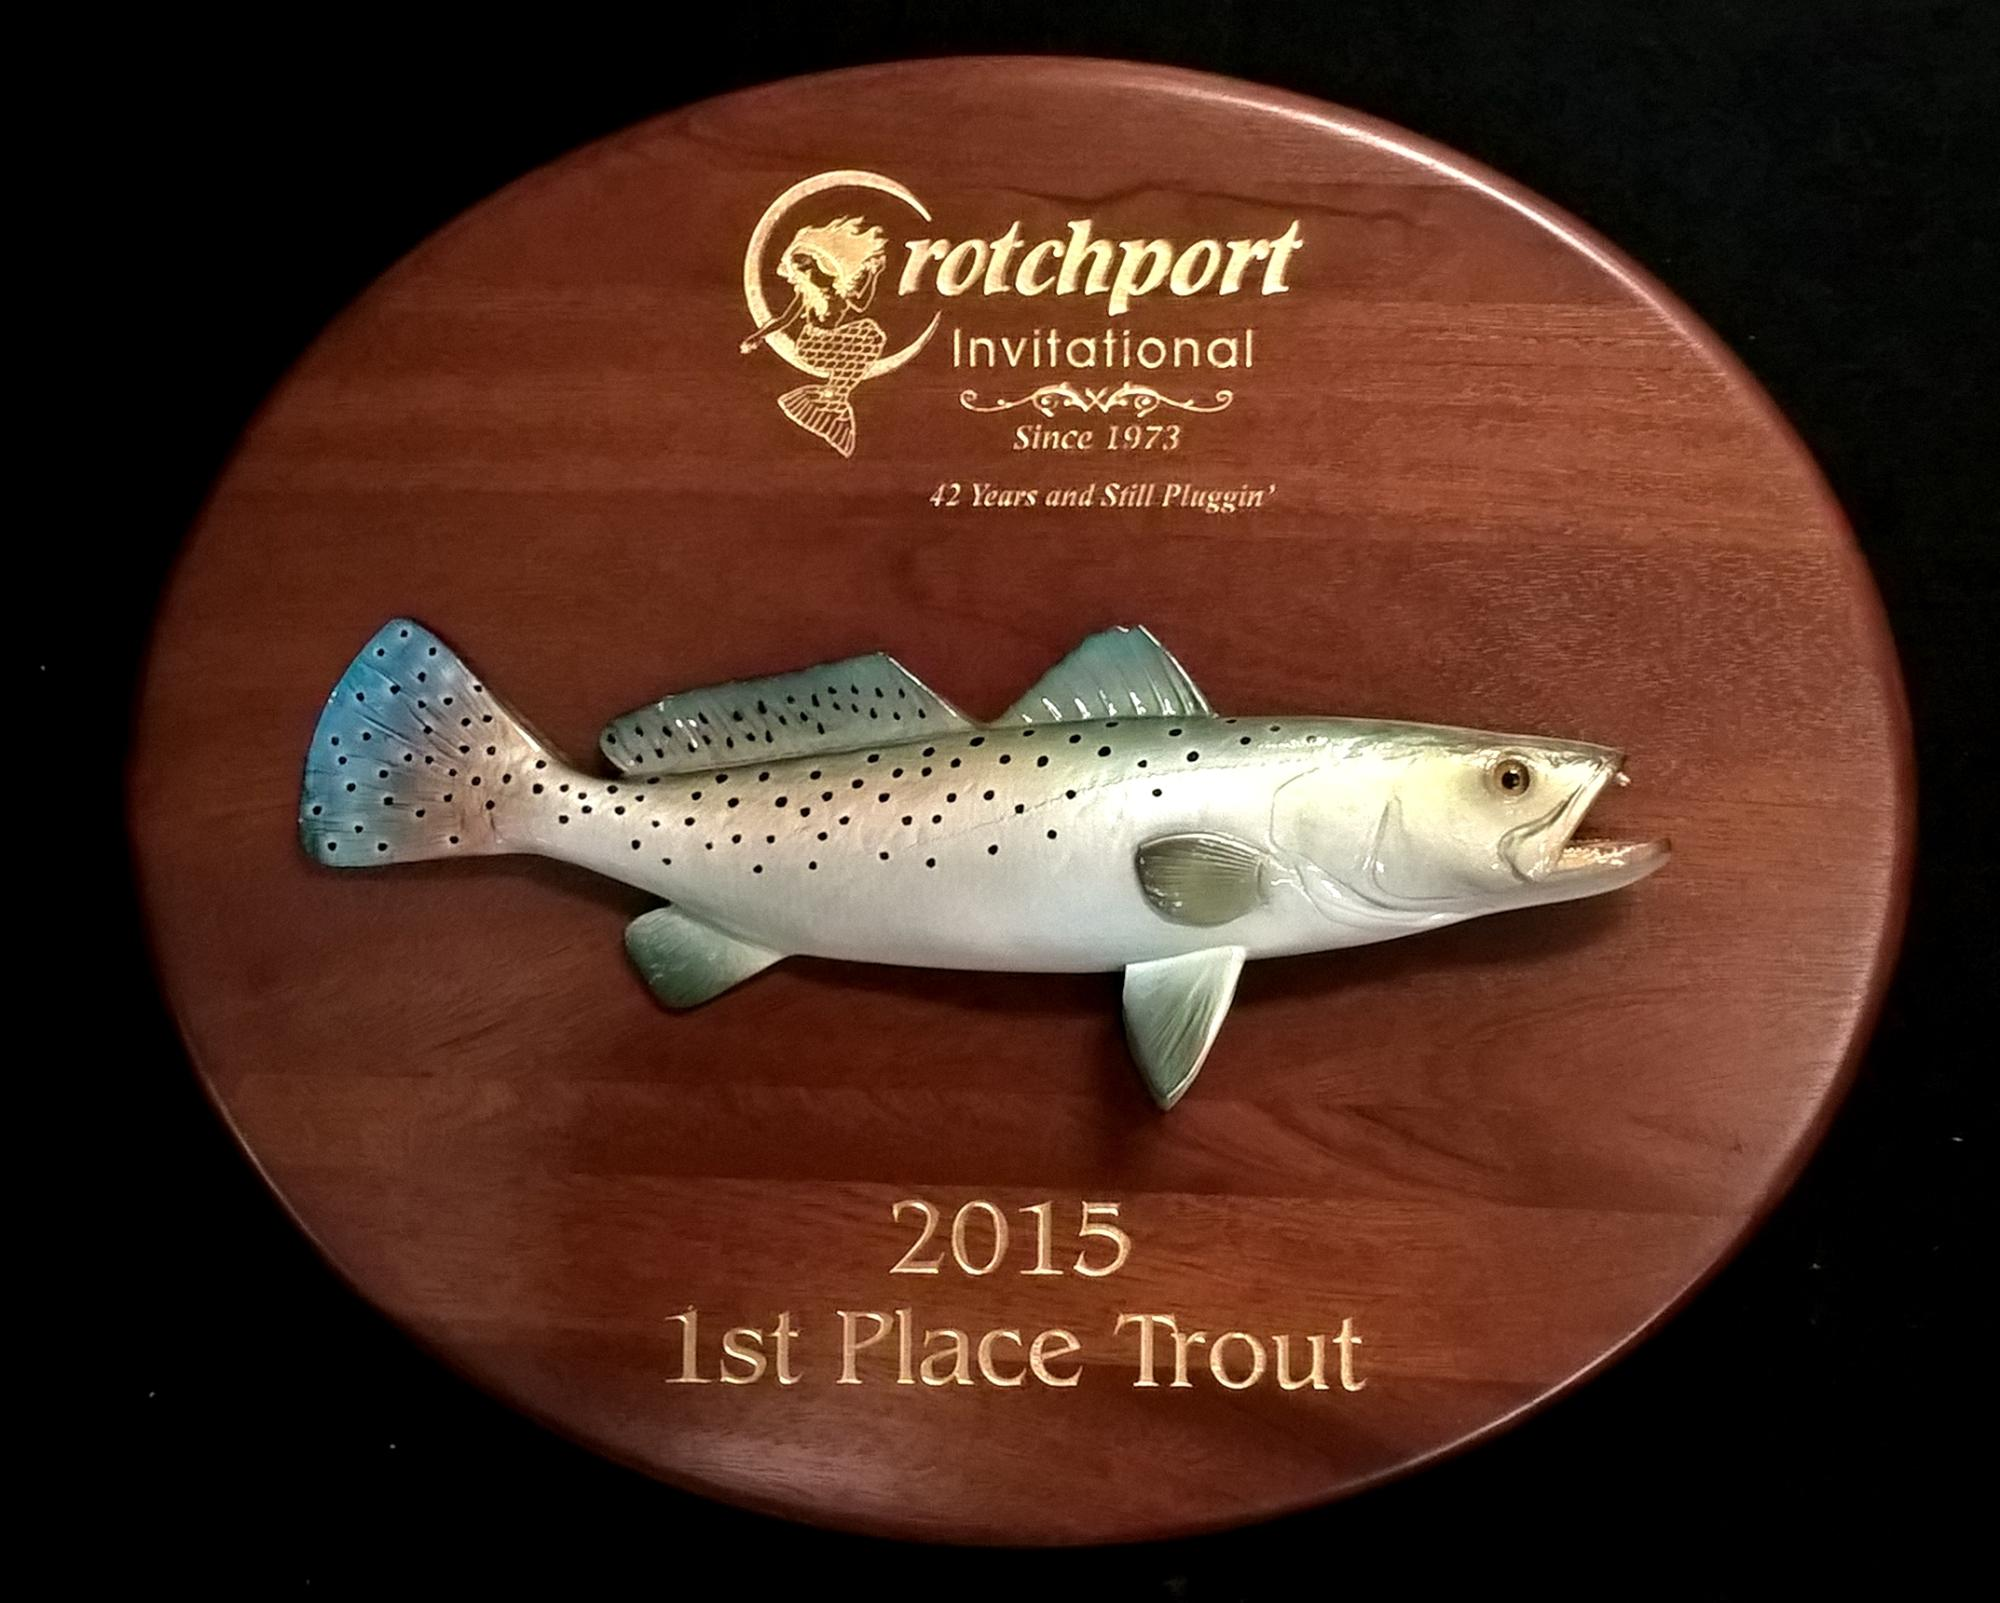 Crotchport_Sea_Trout_plaque.jpg